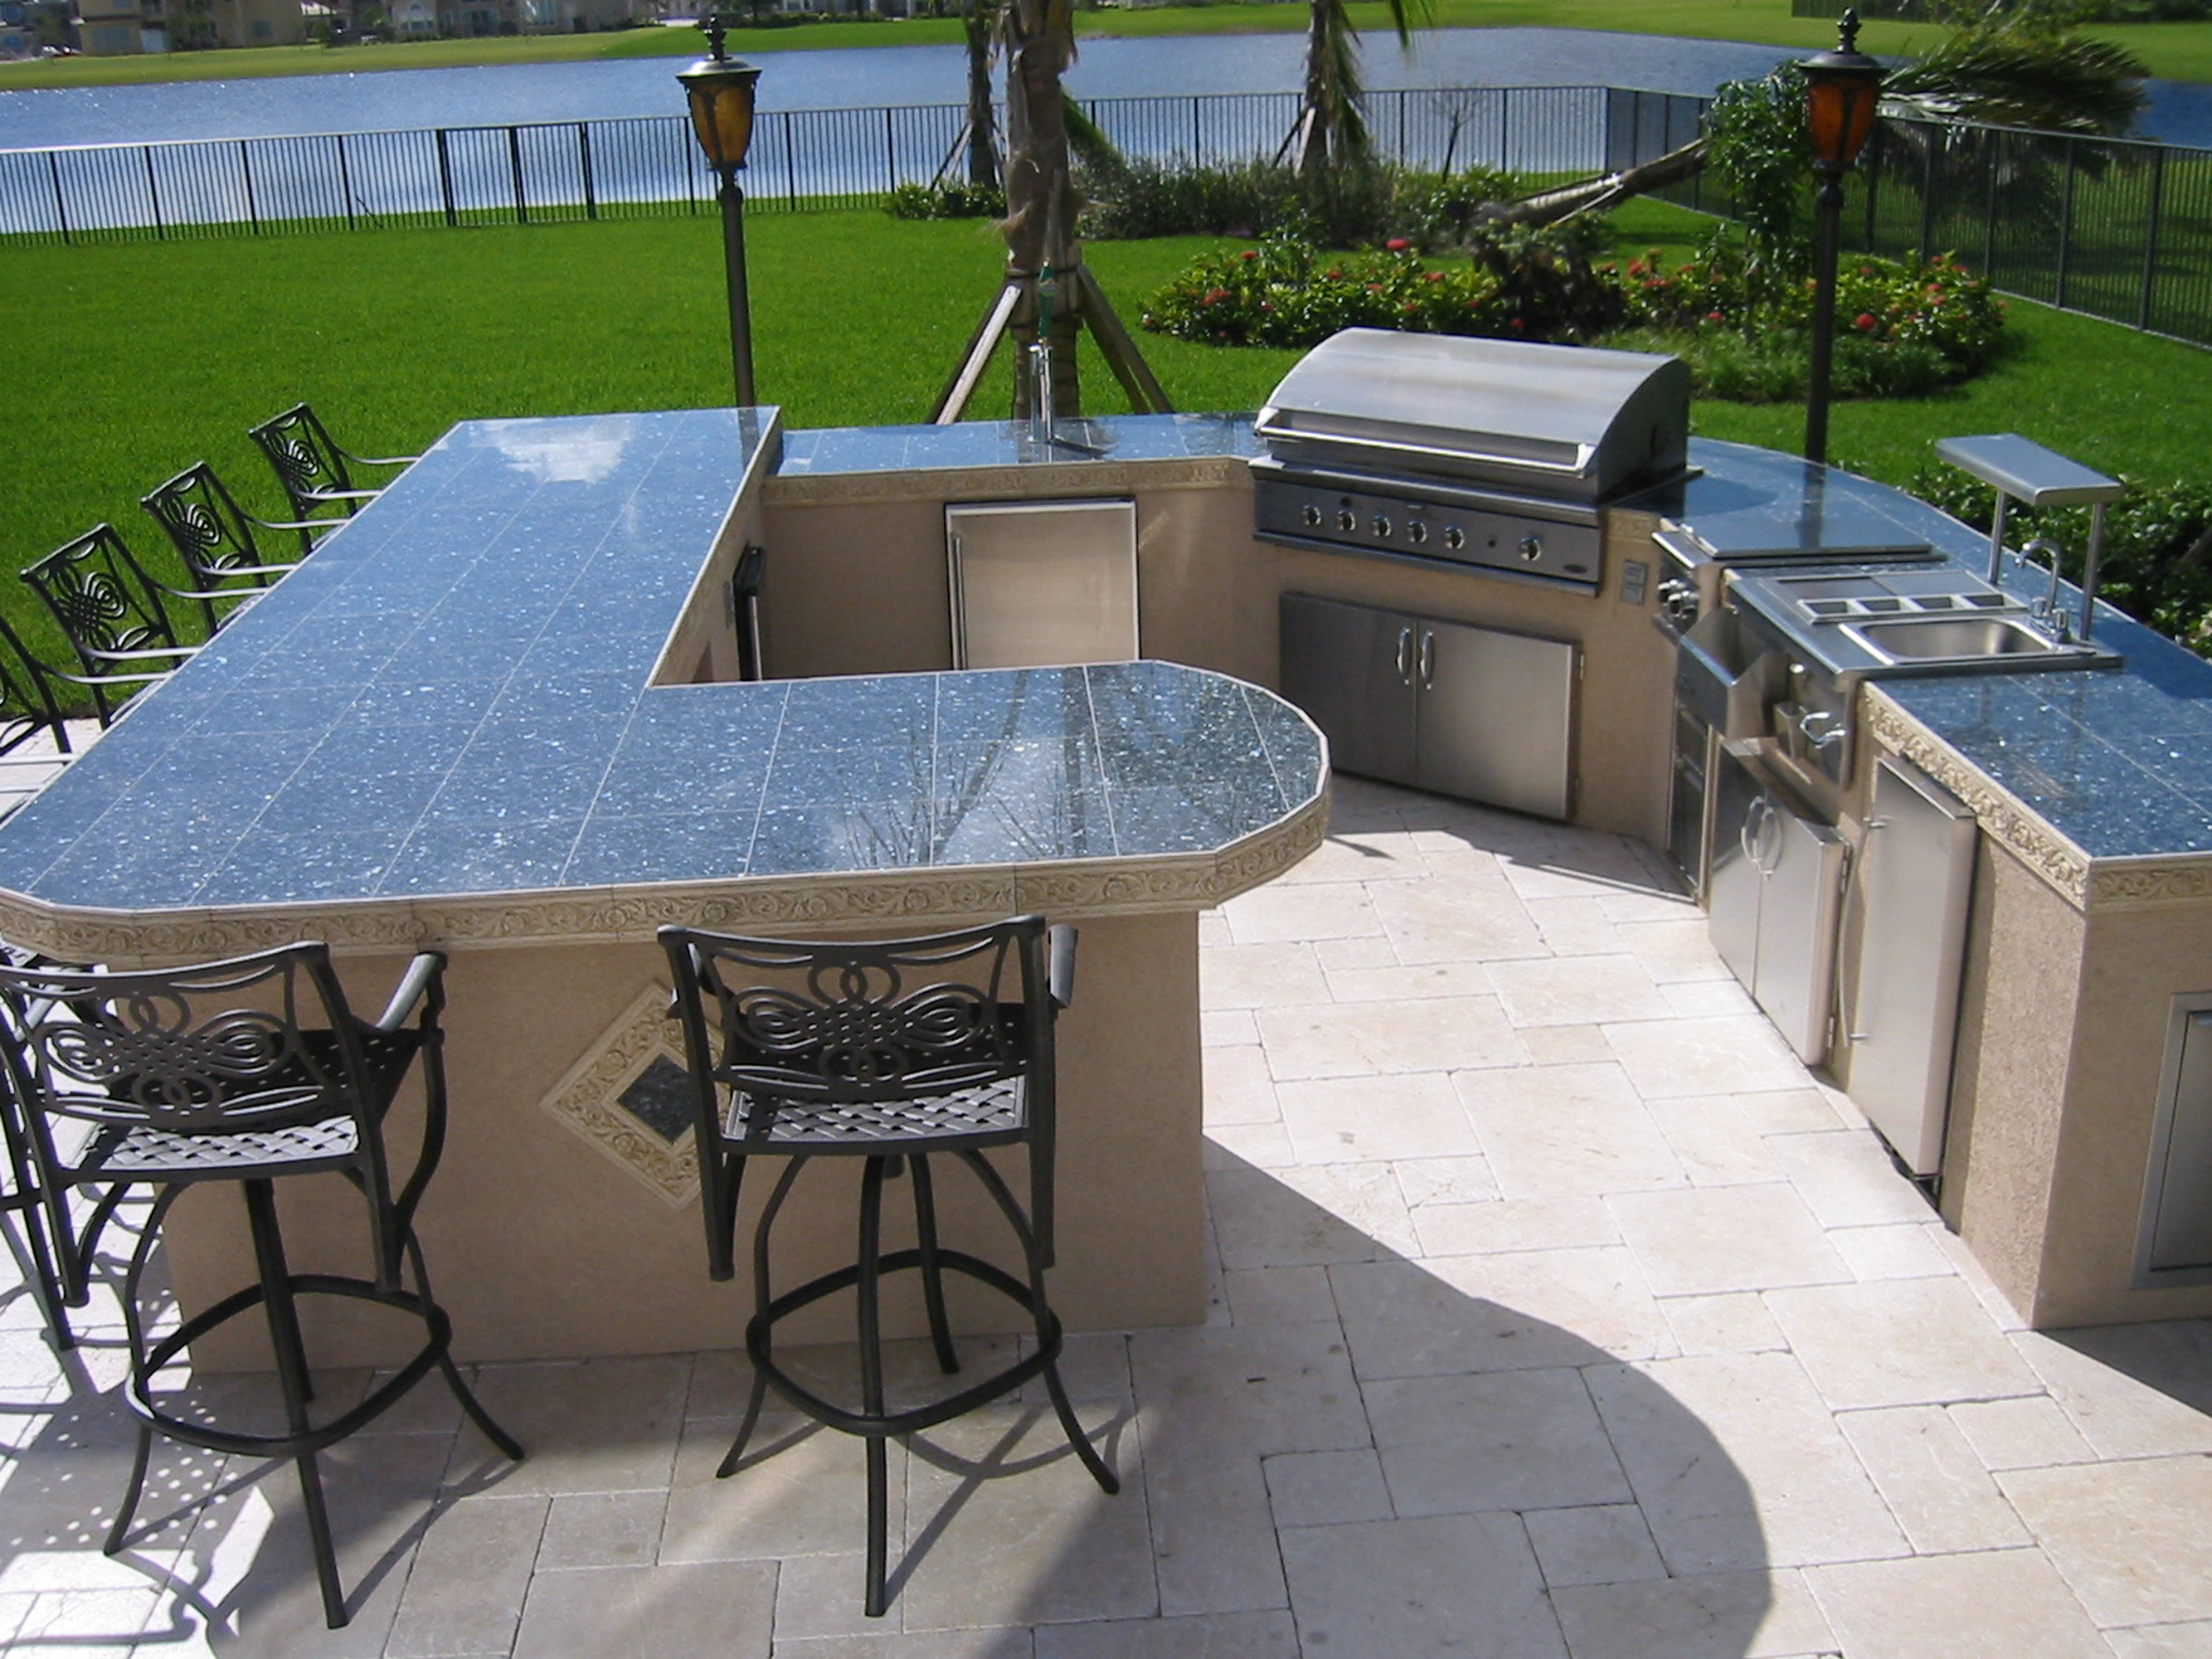 bbq grill design ideas - Bbq Design Ideas